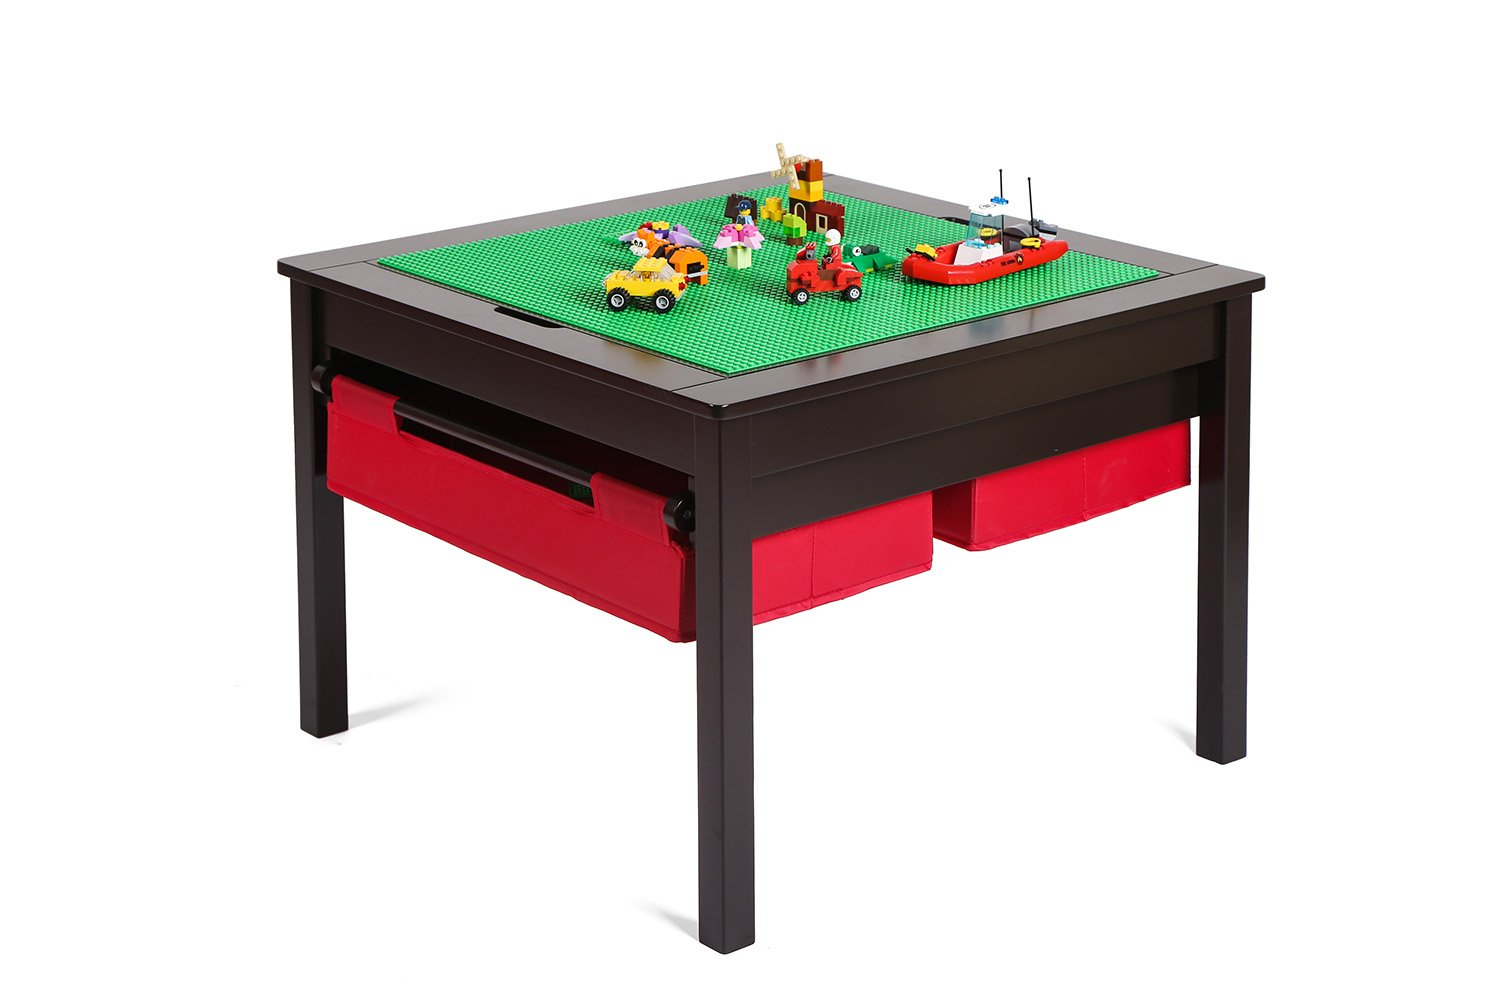 UTEX 2 In 1 Kids Construction Lego Table with Storage Drawers and ...